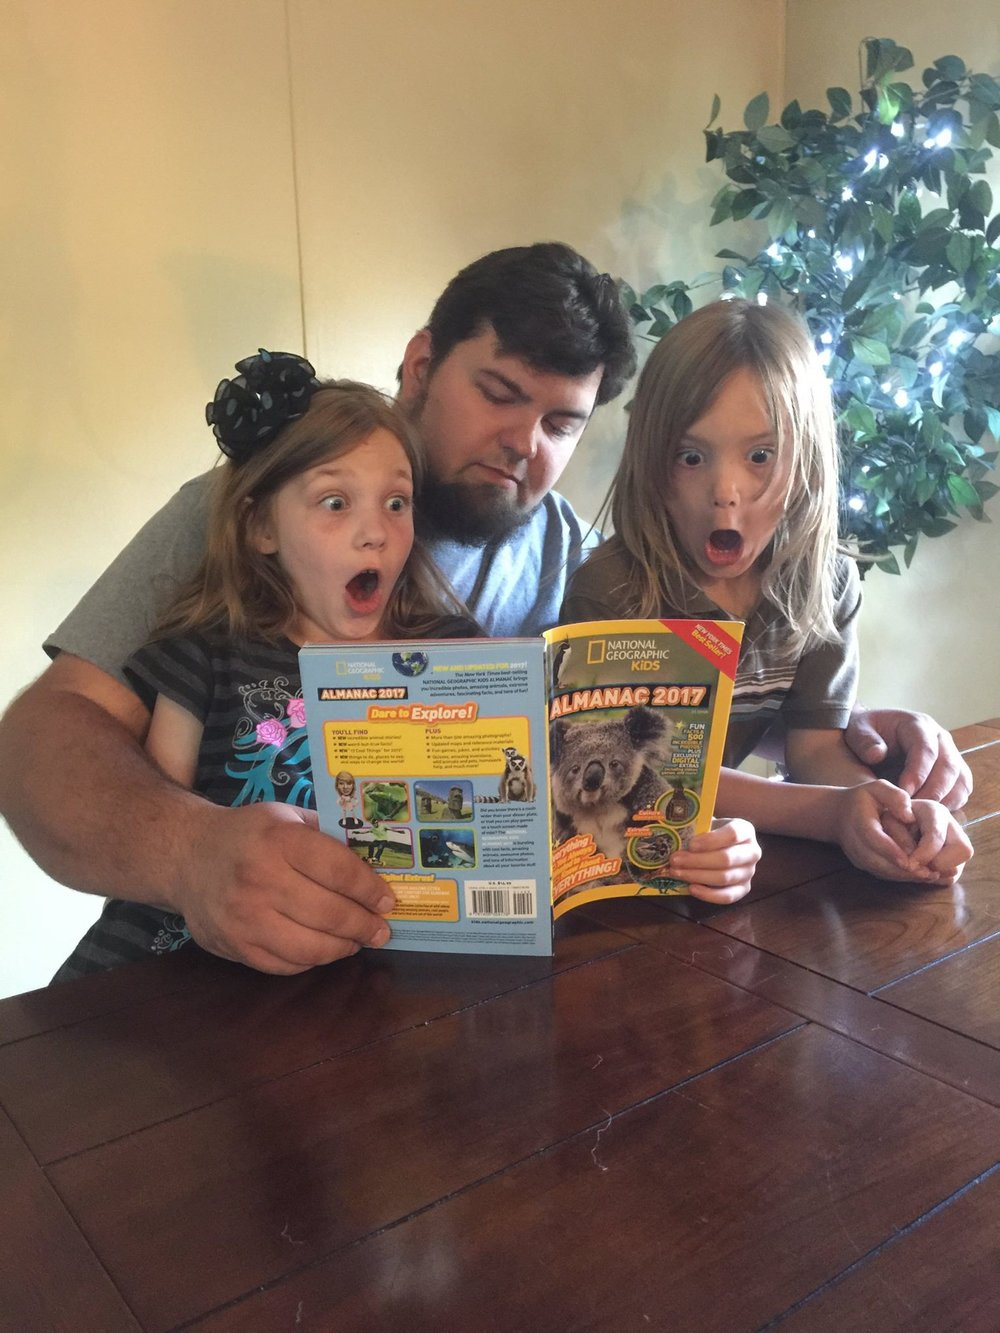 They were so shocked...their faces...priceless! Totally worth buying the almanac every year!